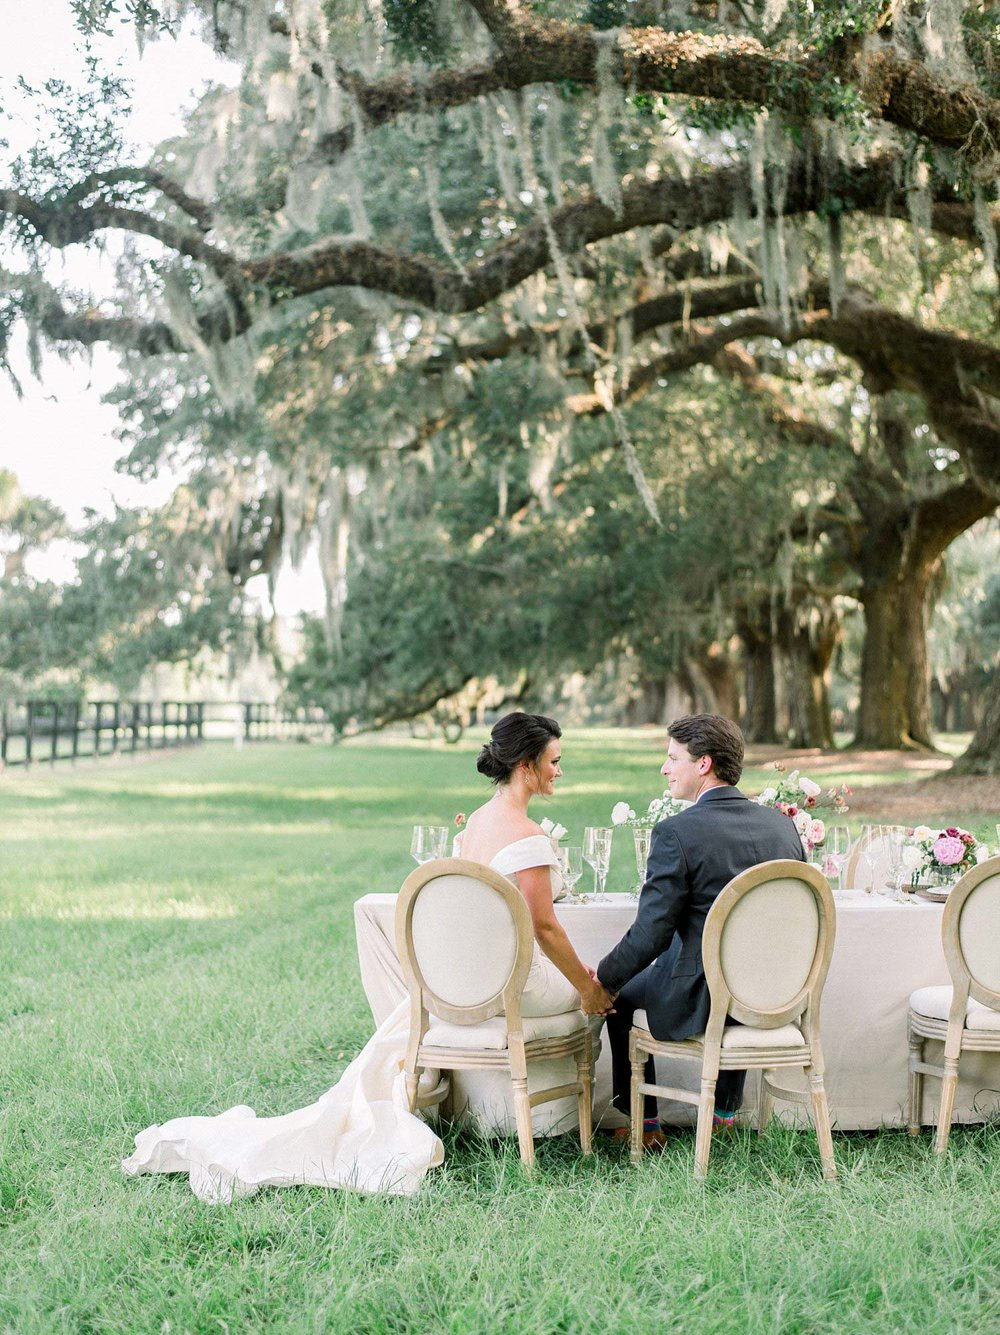 Bride and groom toasting in a Southern Wedding